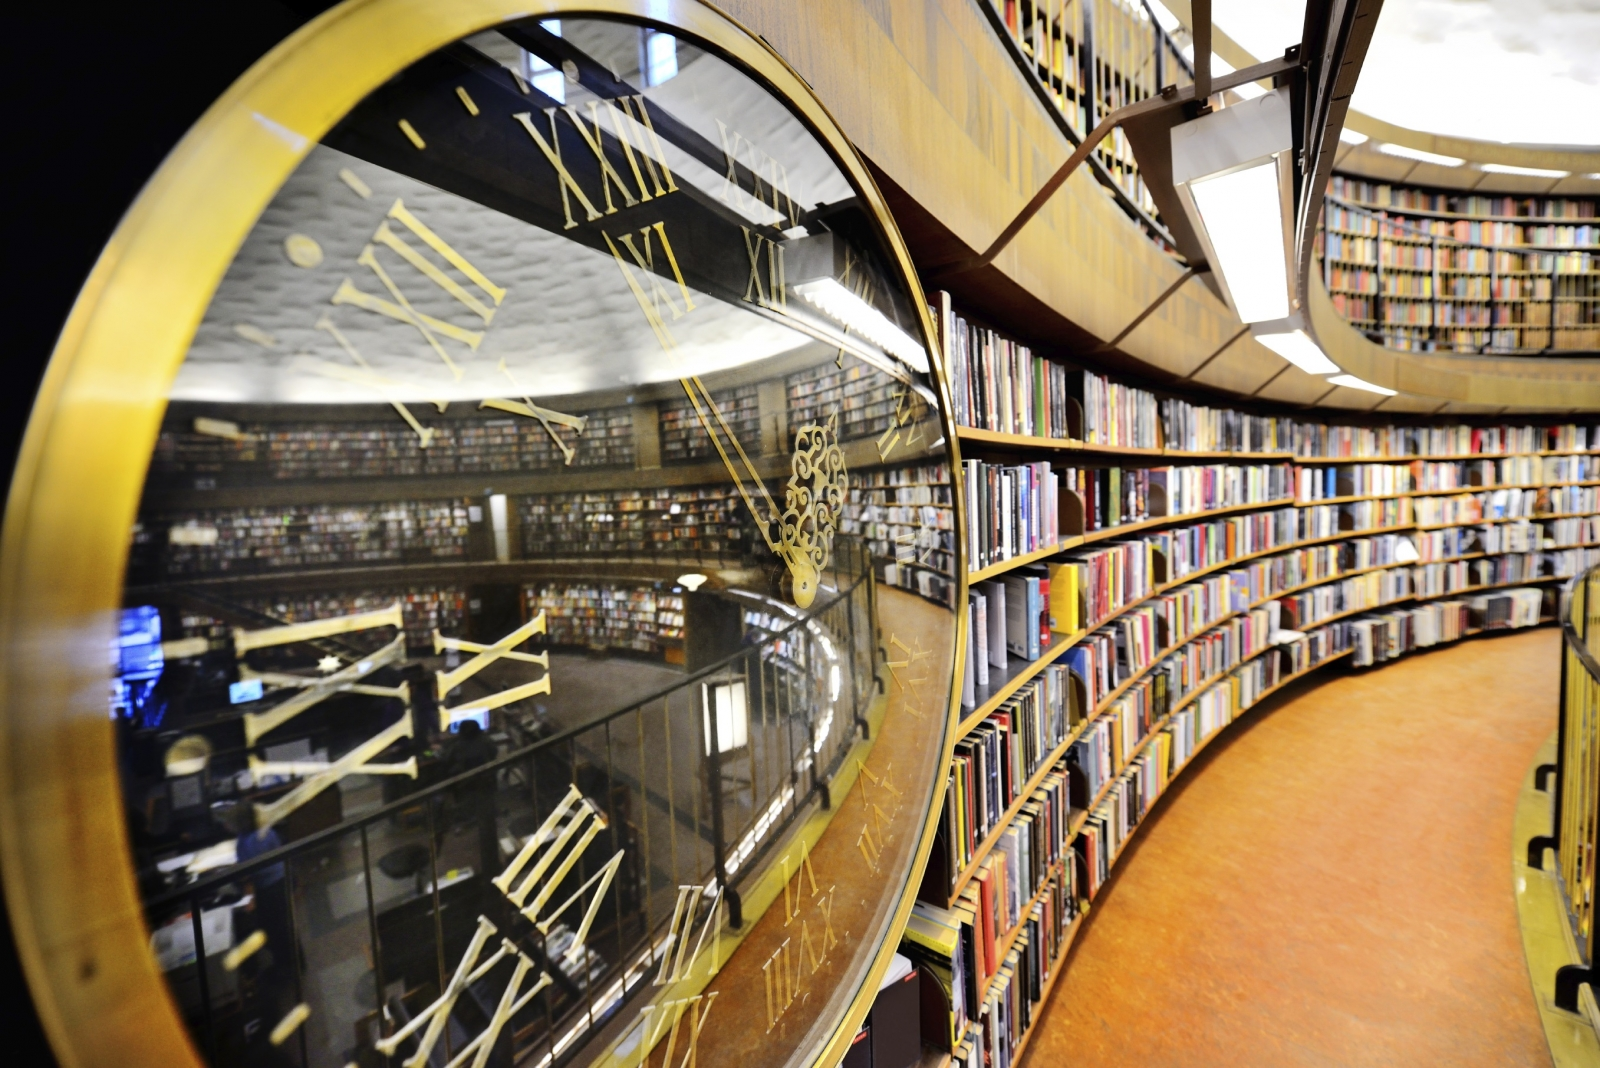 Public Library of Stockholm